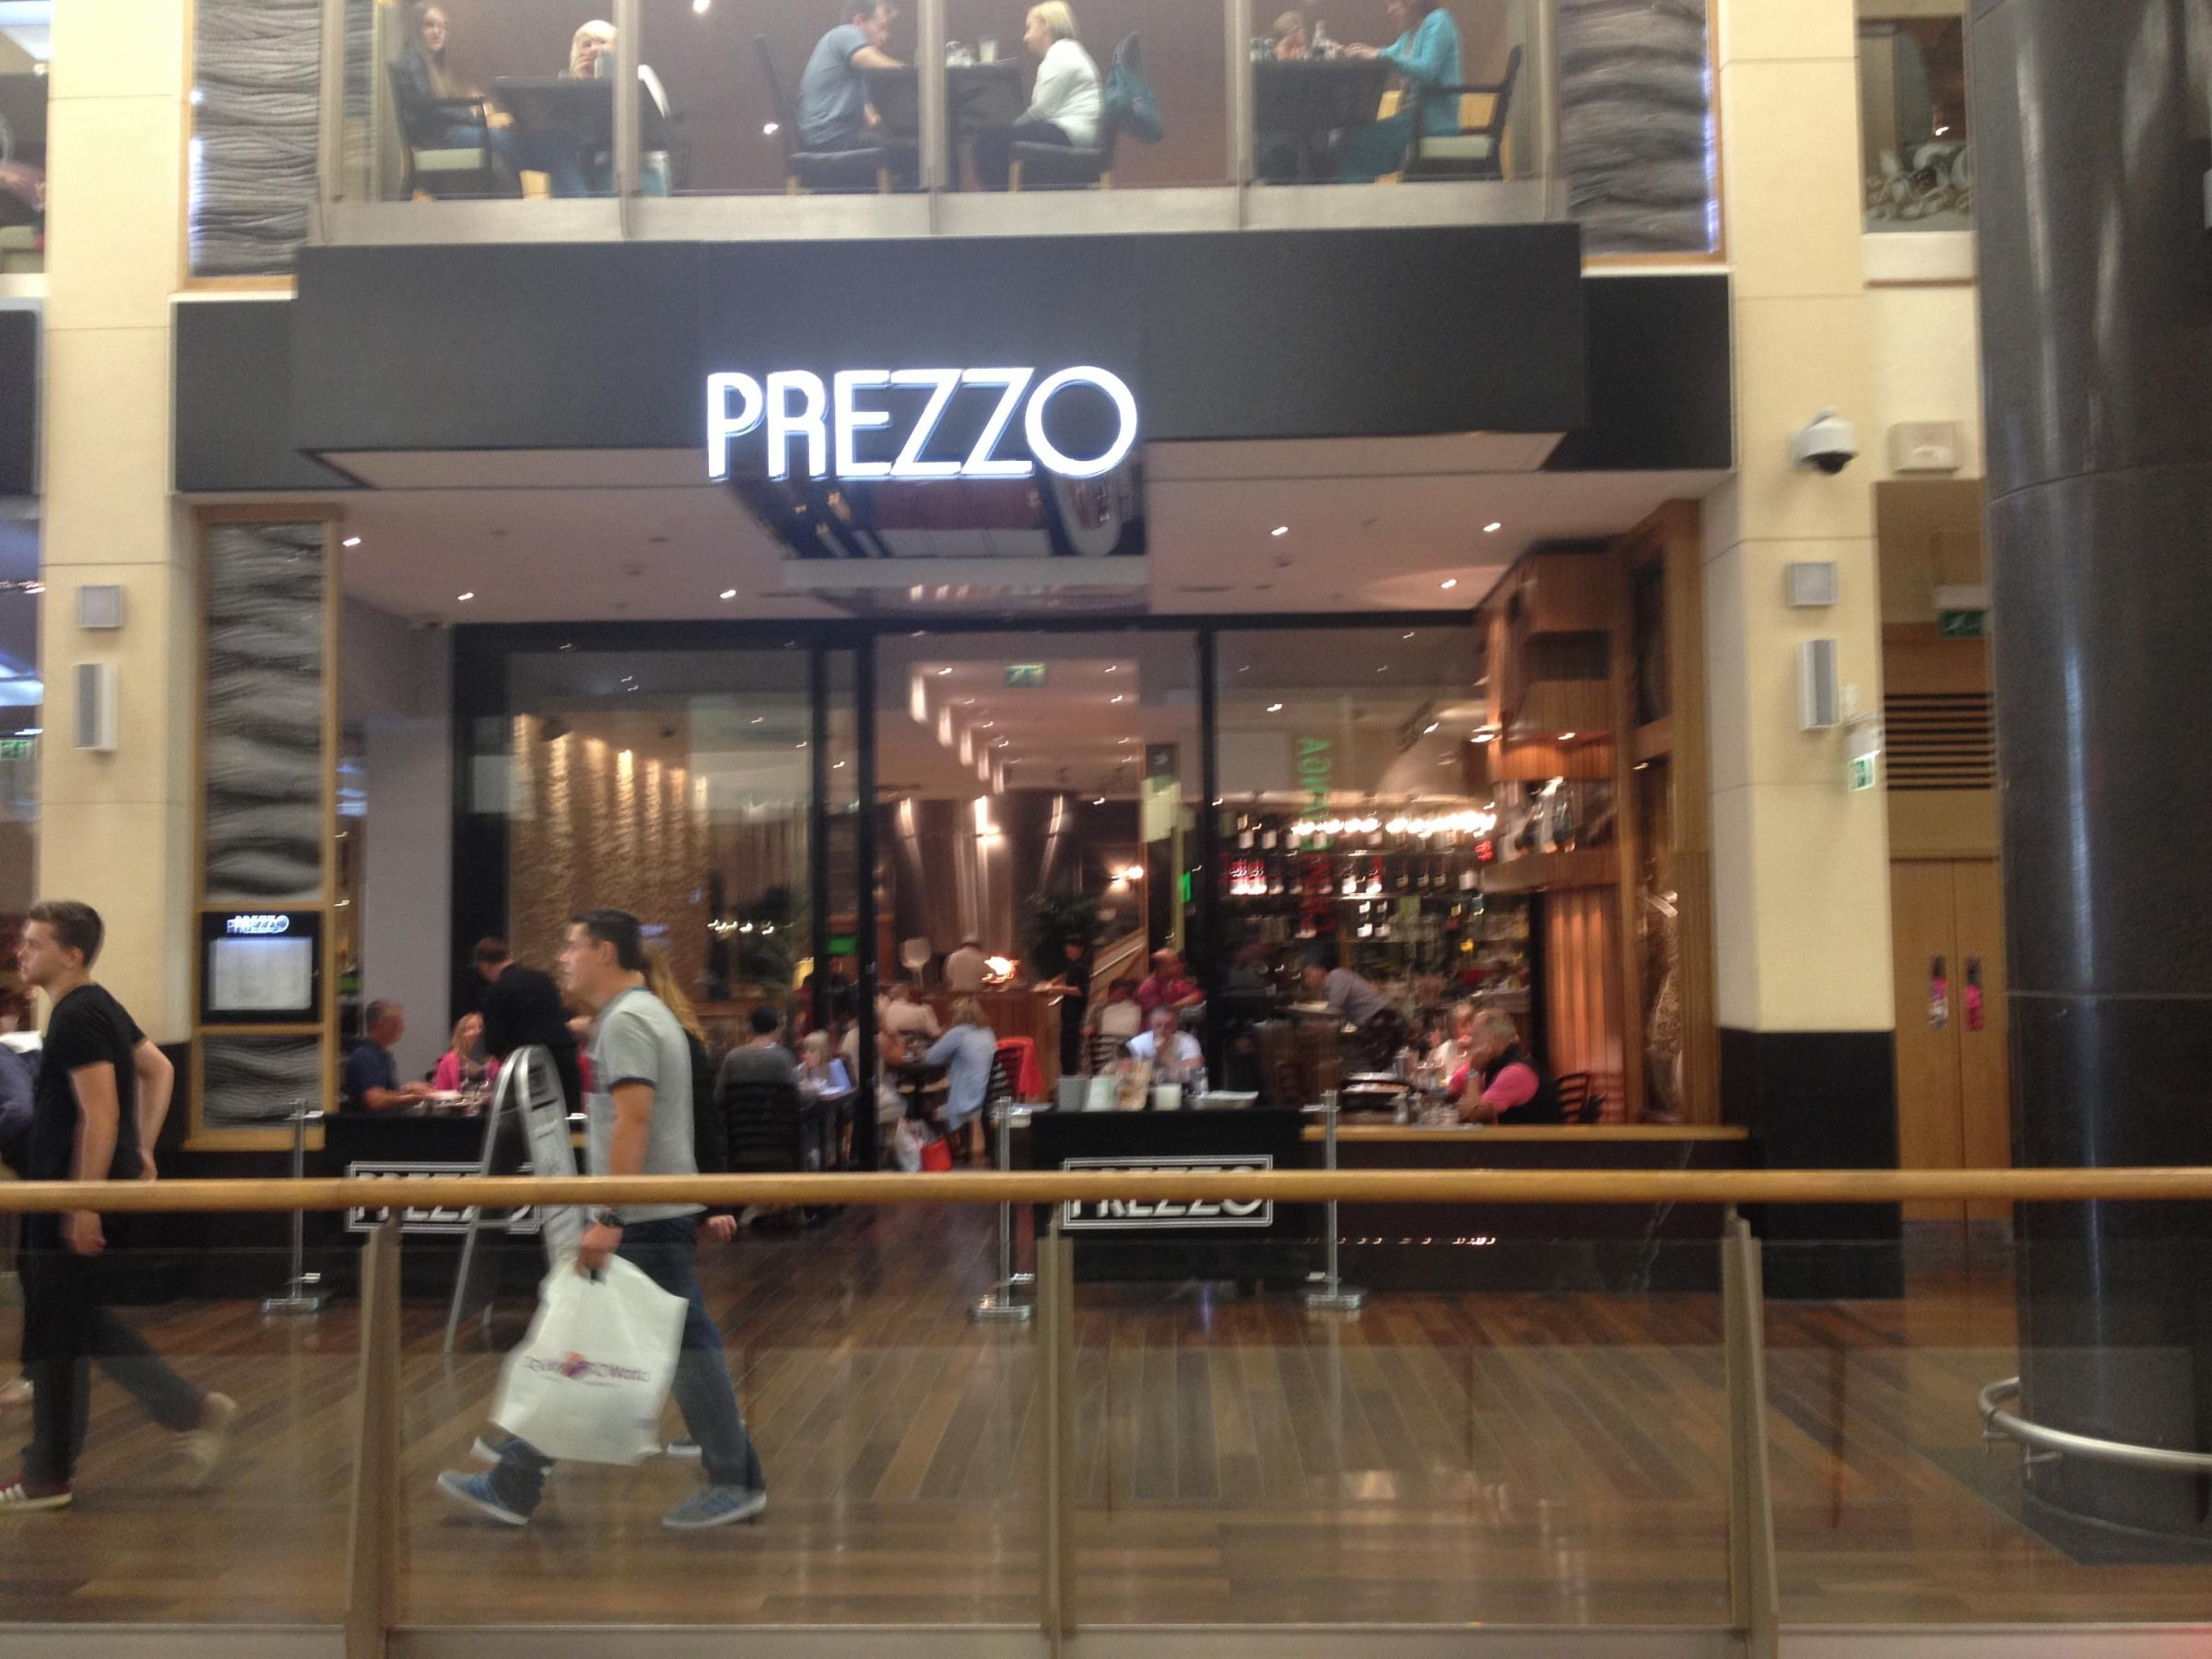 Prezzo in Penarth is being shut down in an effort to save the firm